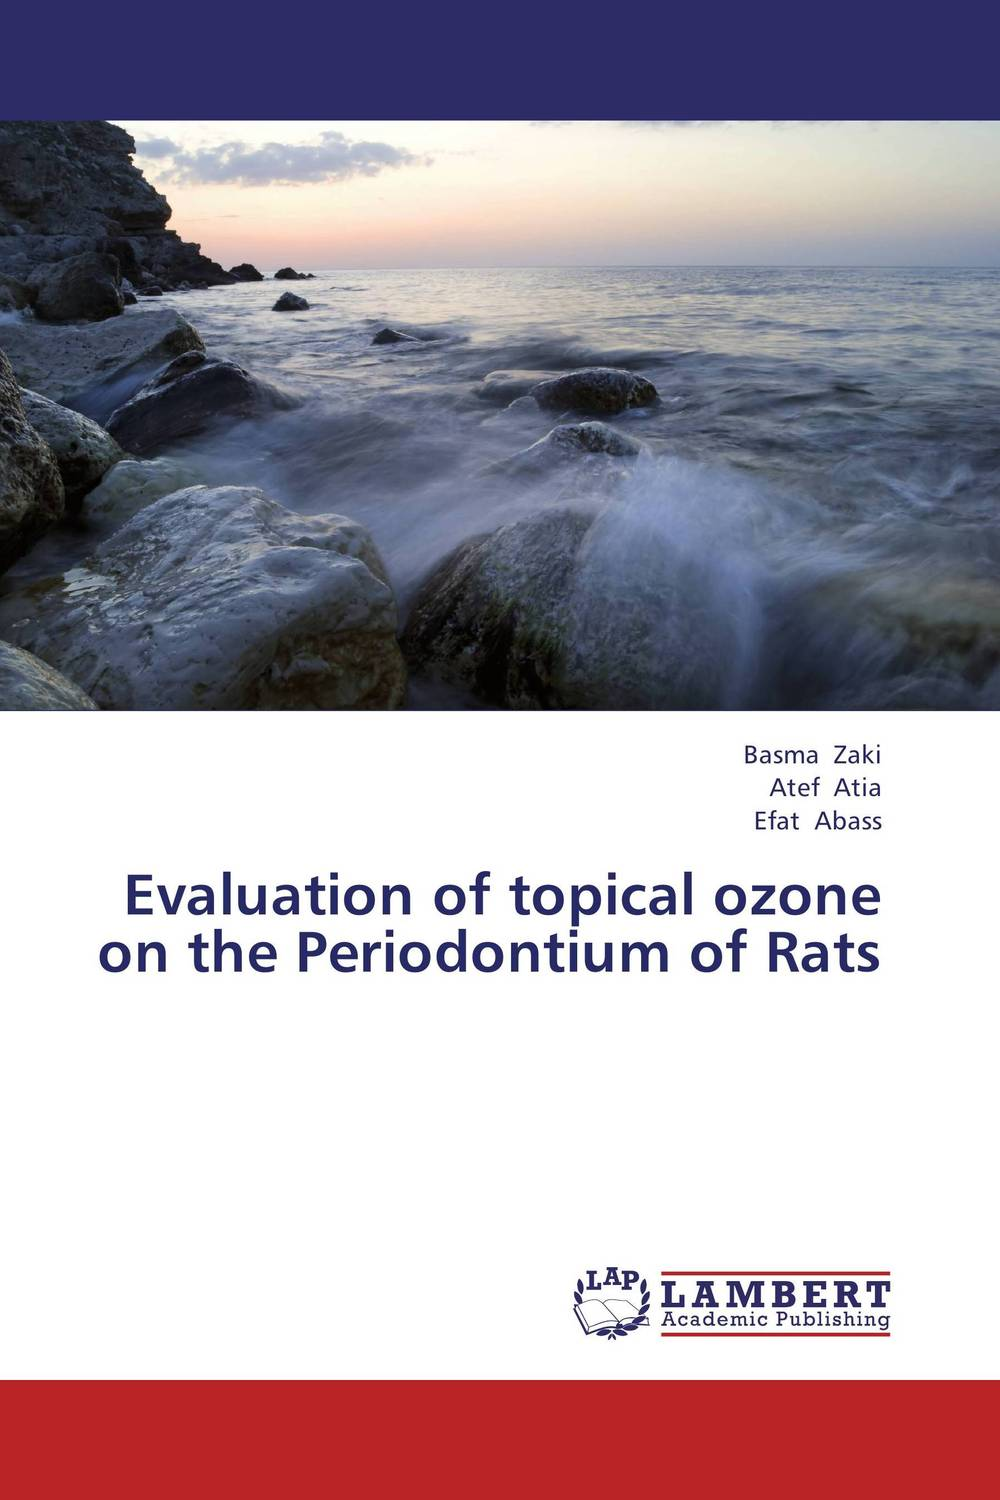 Evaluation of topical ozone on the Periodontium of Rats managing the store